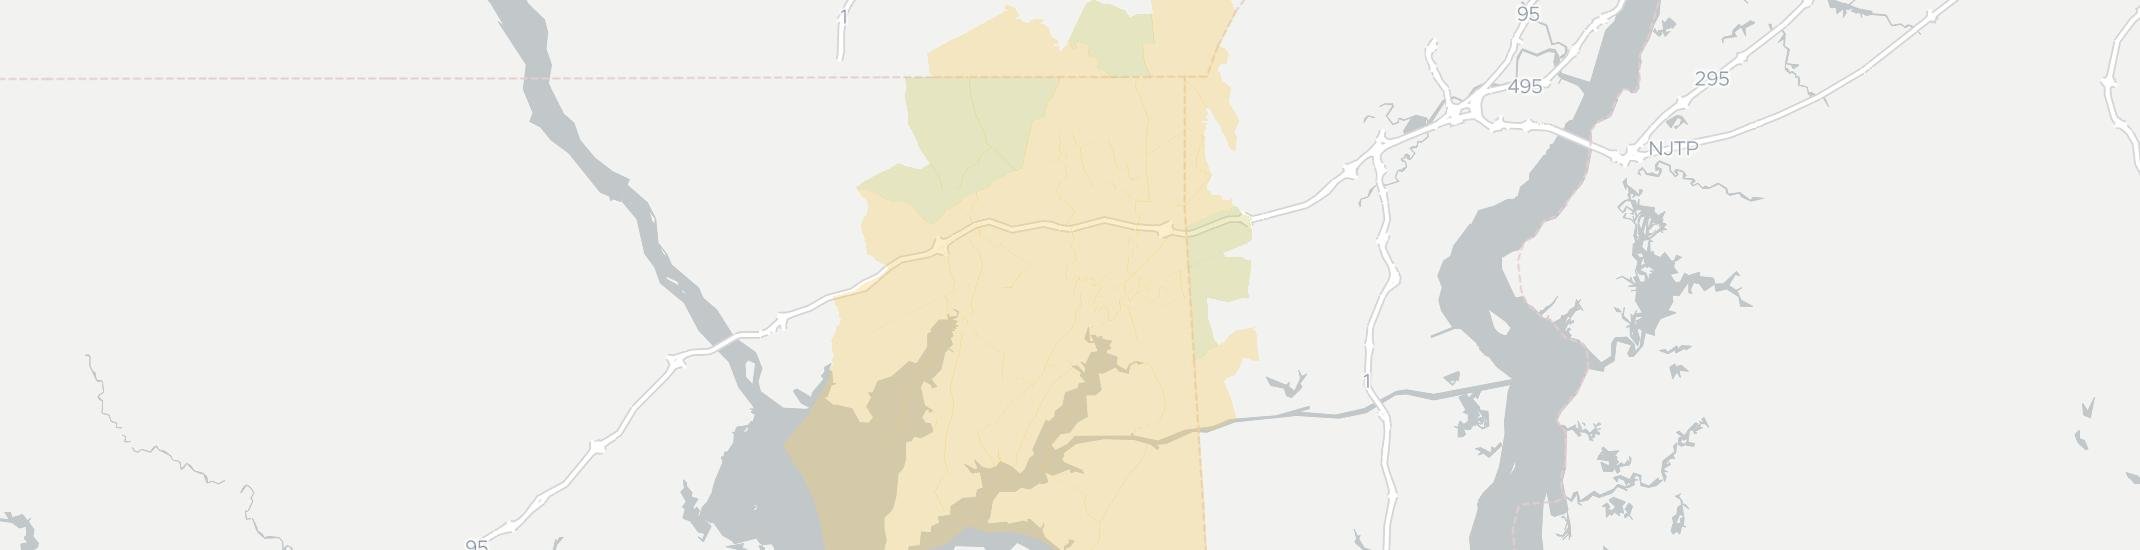 Elkton Internet Competition Map. Click for interactive map.